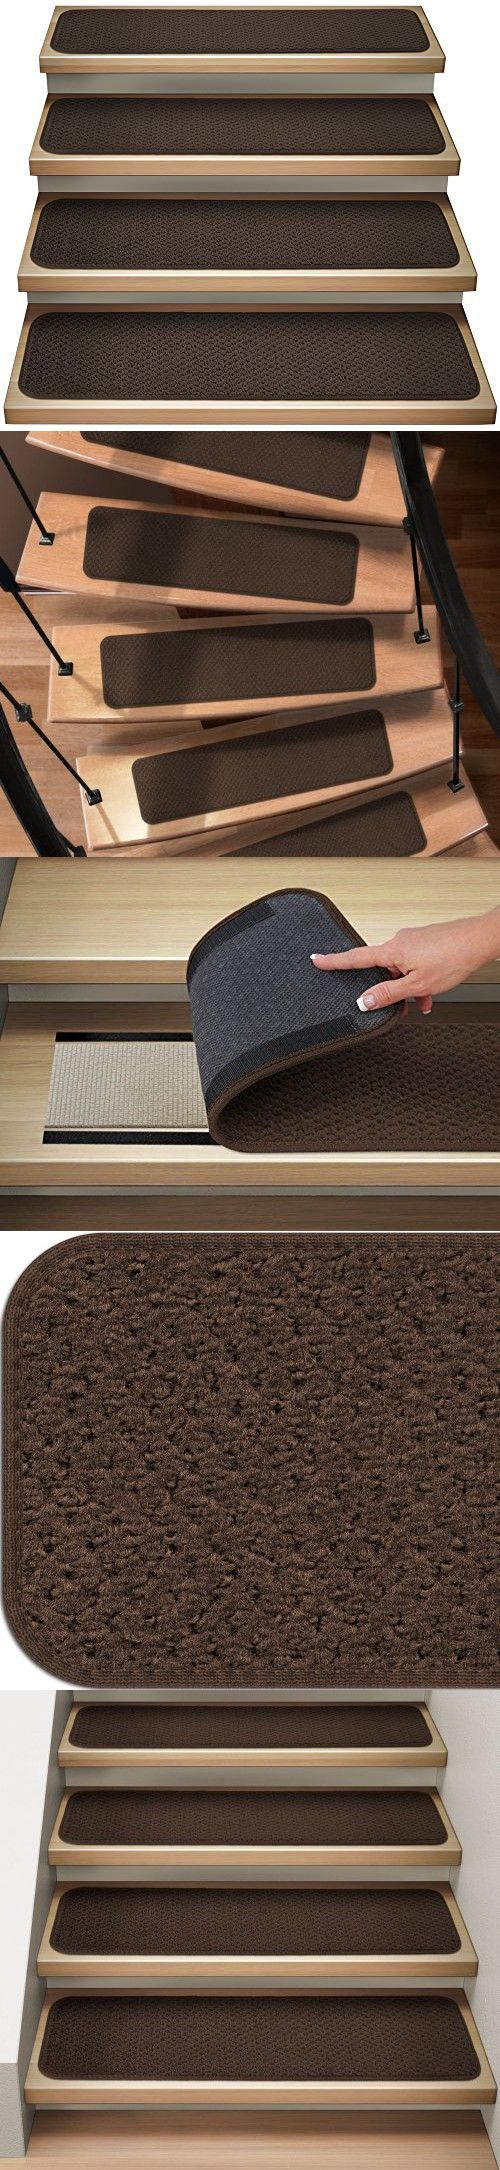 House Home And More Set Of 12 Attachable Indoor Carpet Stair Treads Chocolate Brown 8 In X 23 5 In Several Other Sizes To Choose From Indoor Carpet Carpet Stair Treads Carpet Stairs